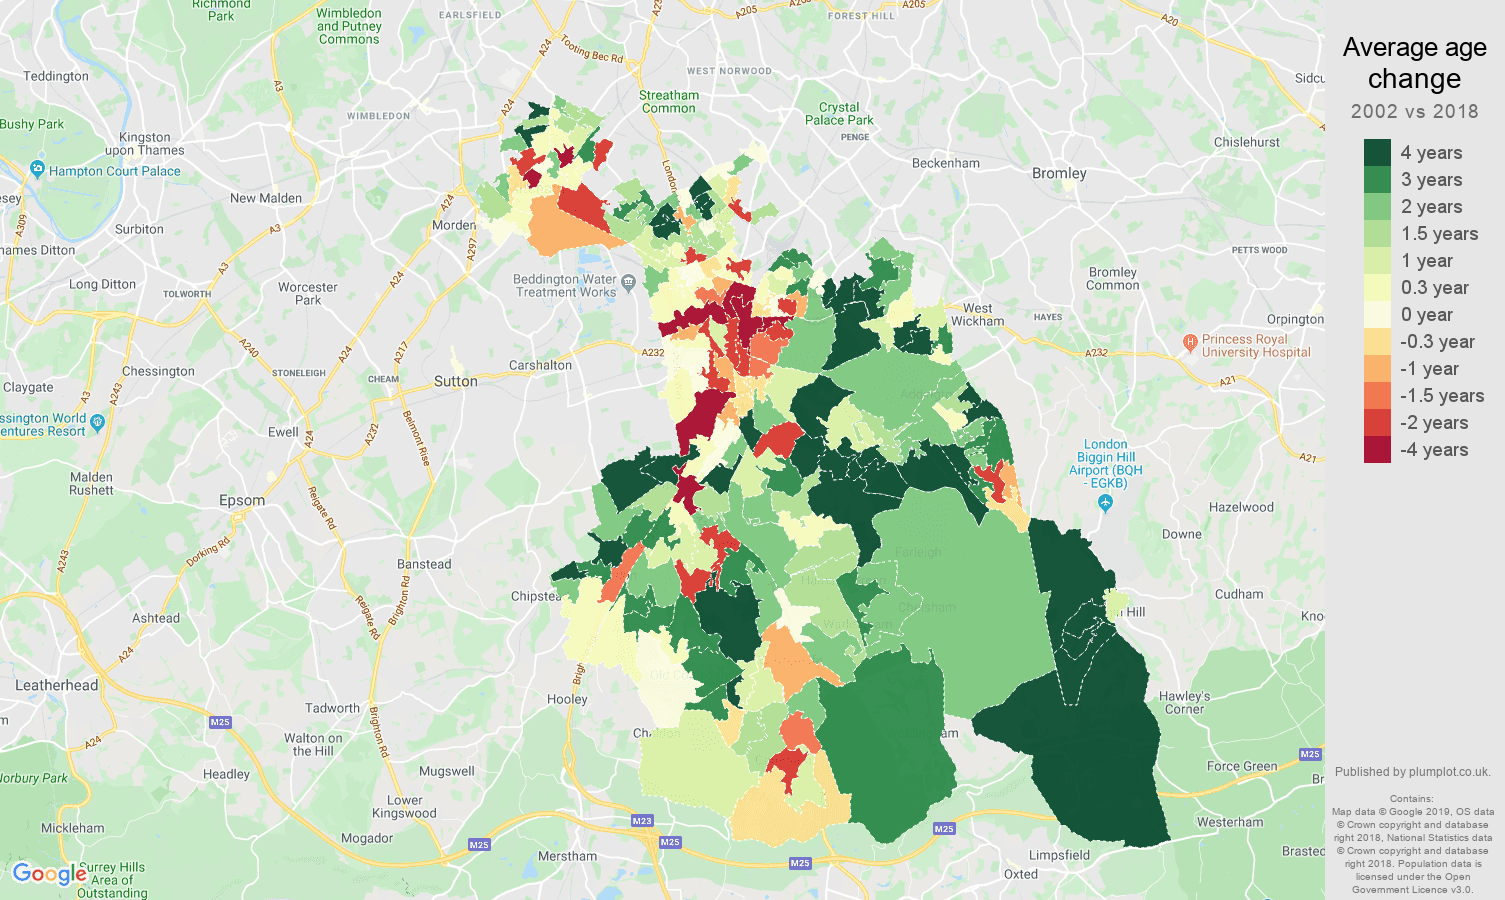 Croydon average age change map